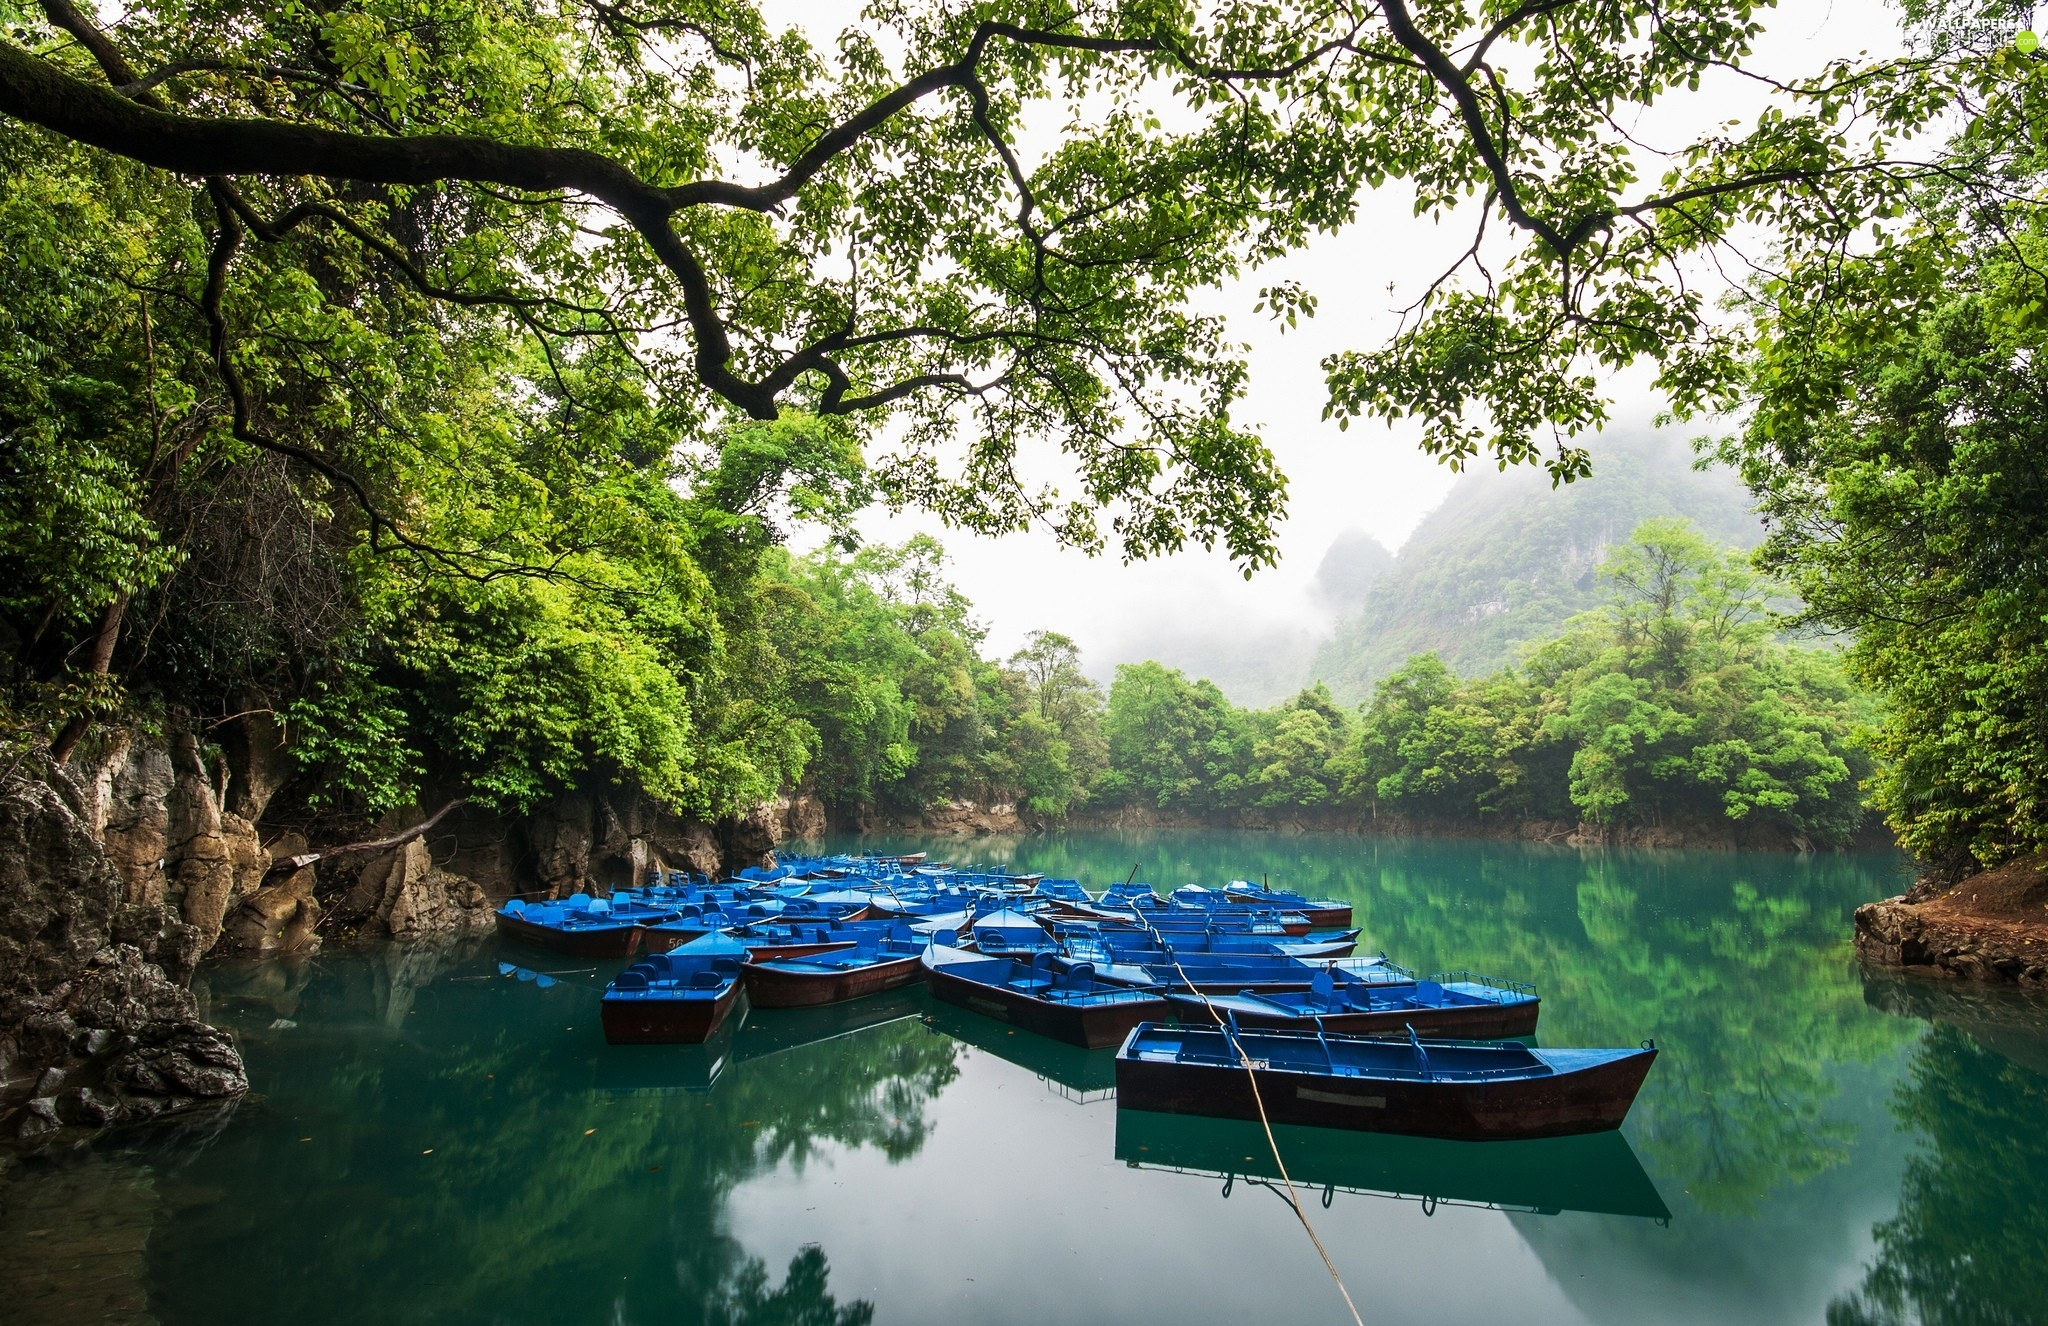 forest, boats, viewes, Mountains, trees, River